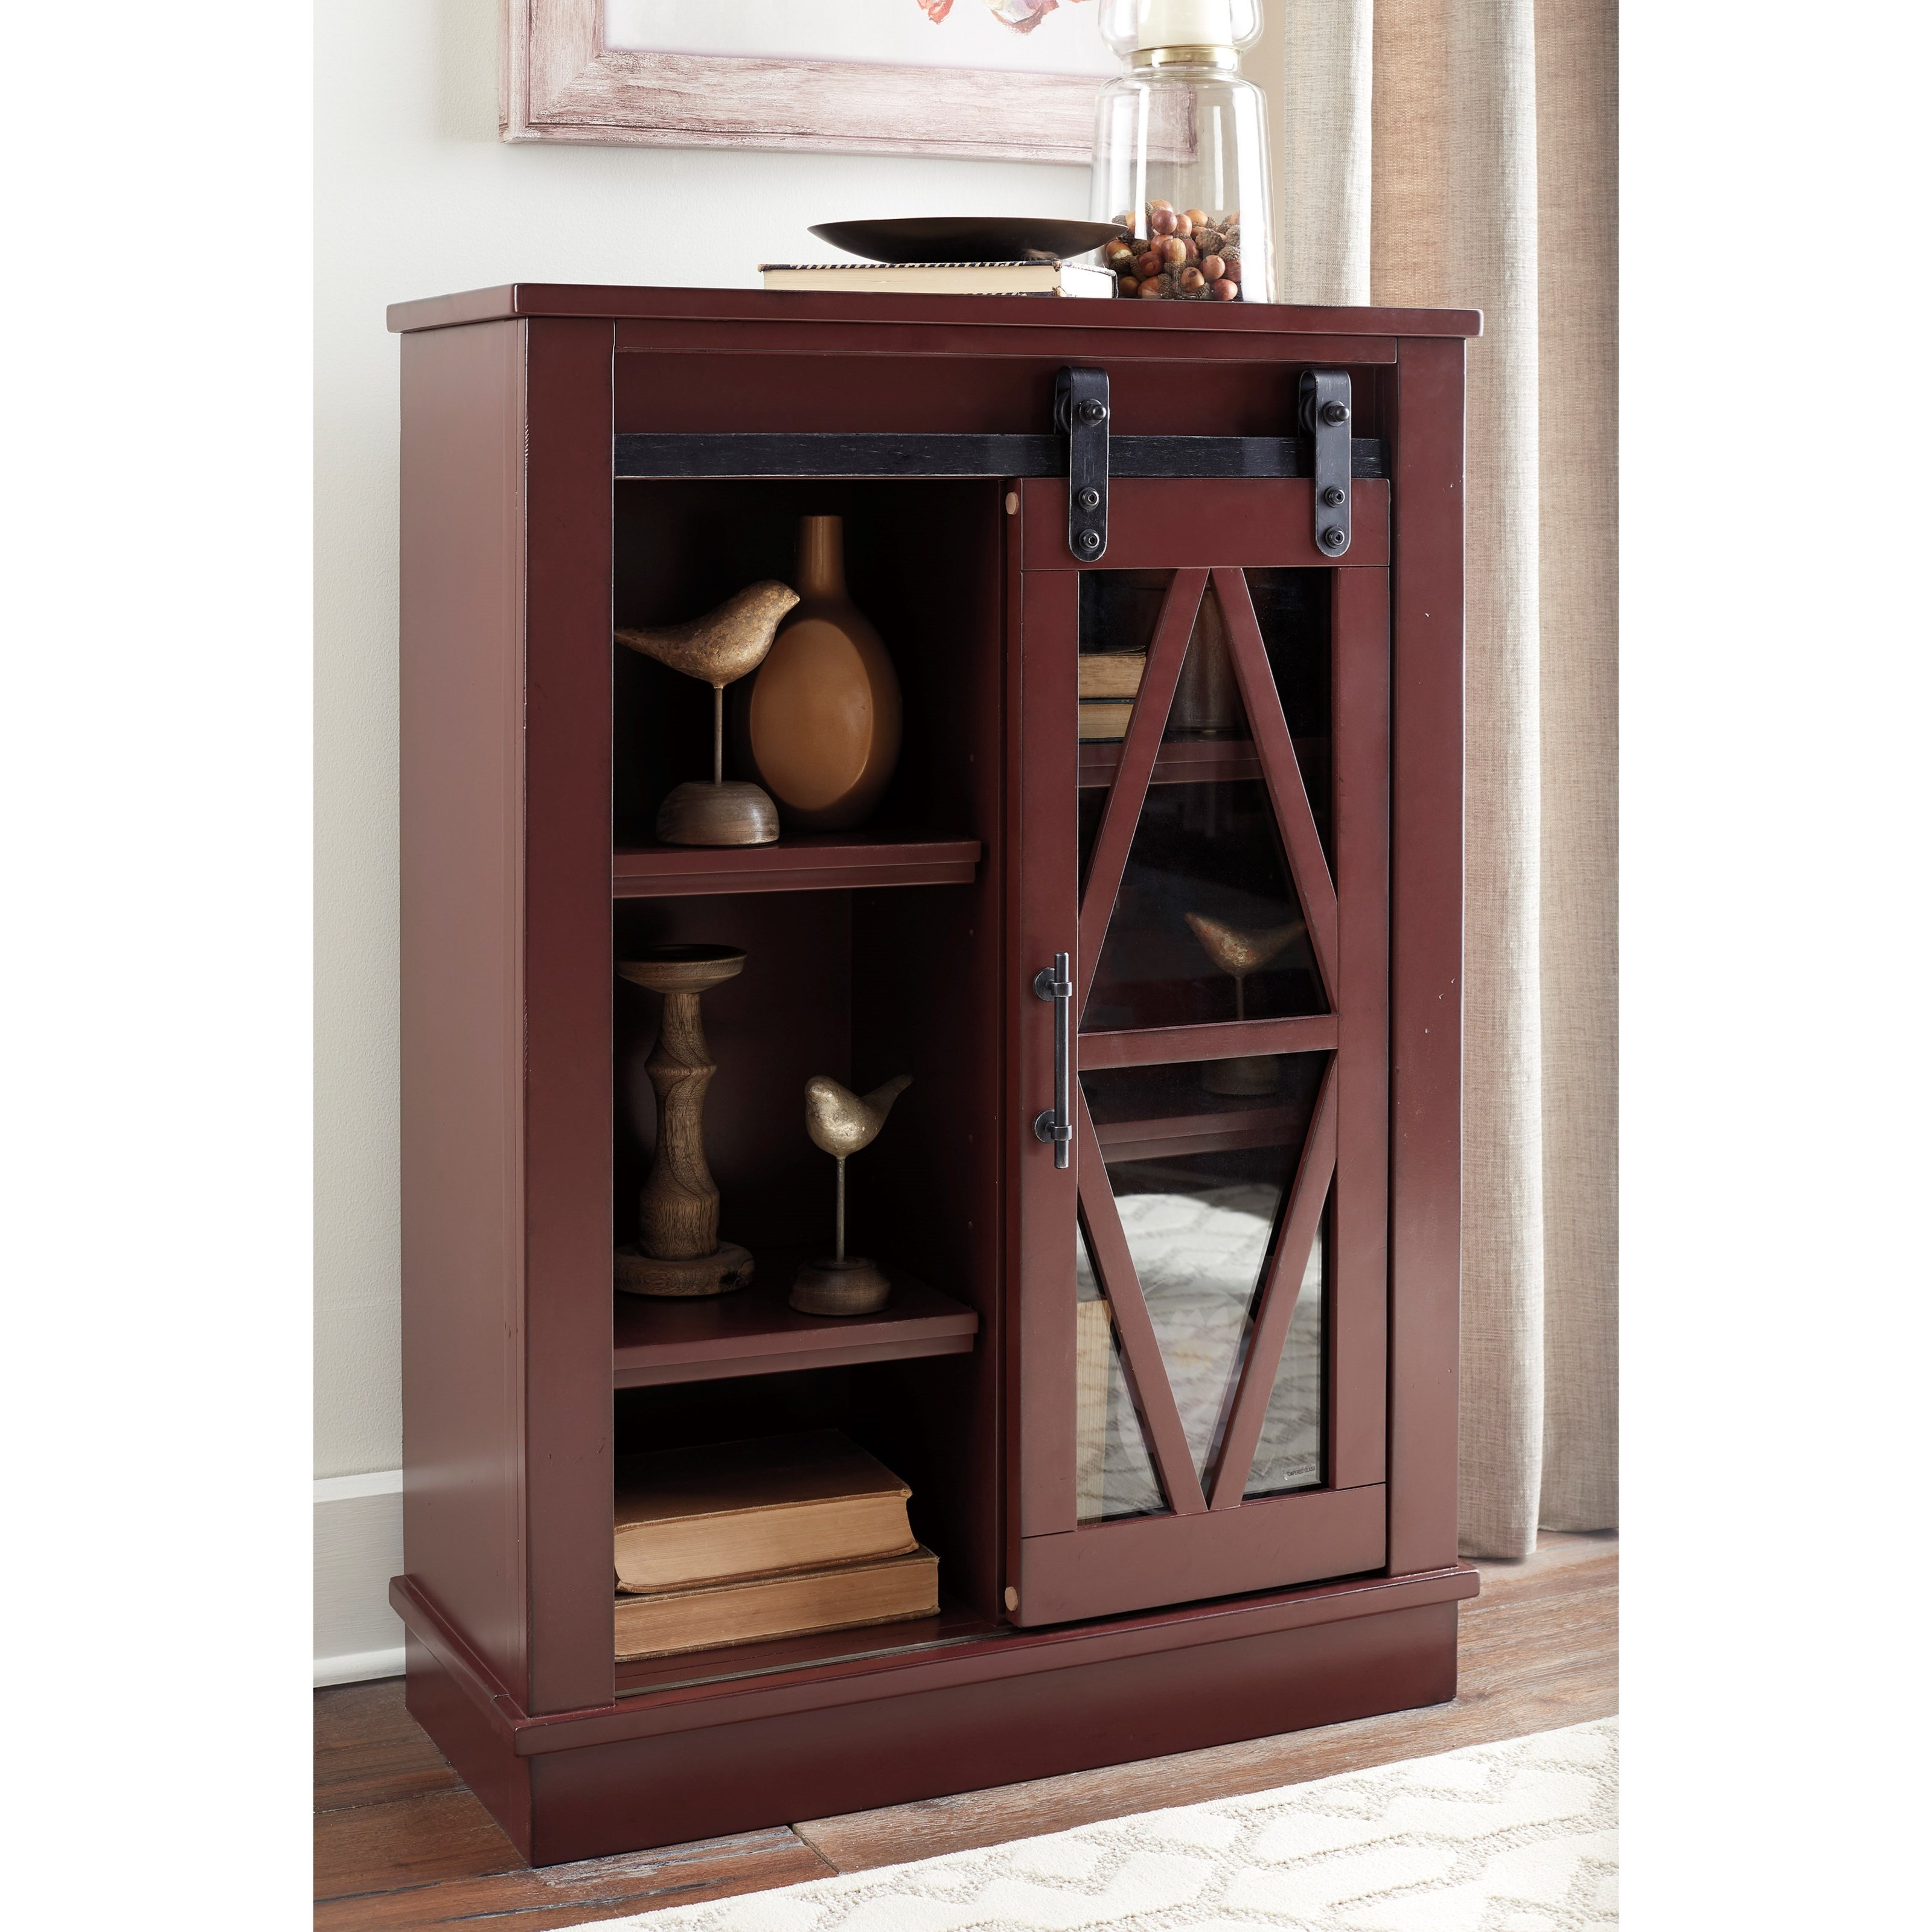 Walentin Accent Cabinet By Ashley Furniture: Ashley Signature Design Bronfield Accent Cabinet With